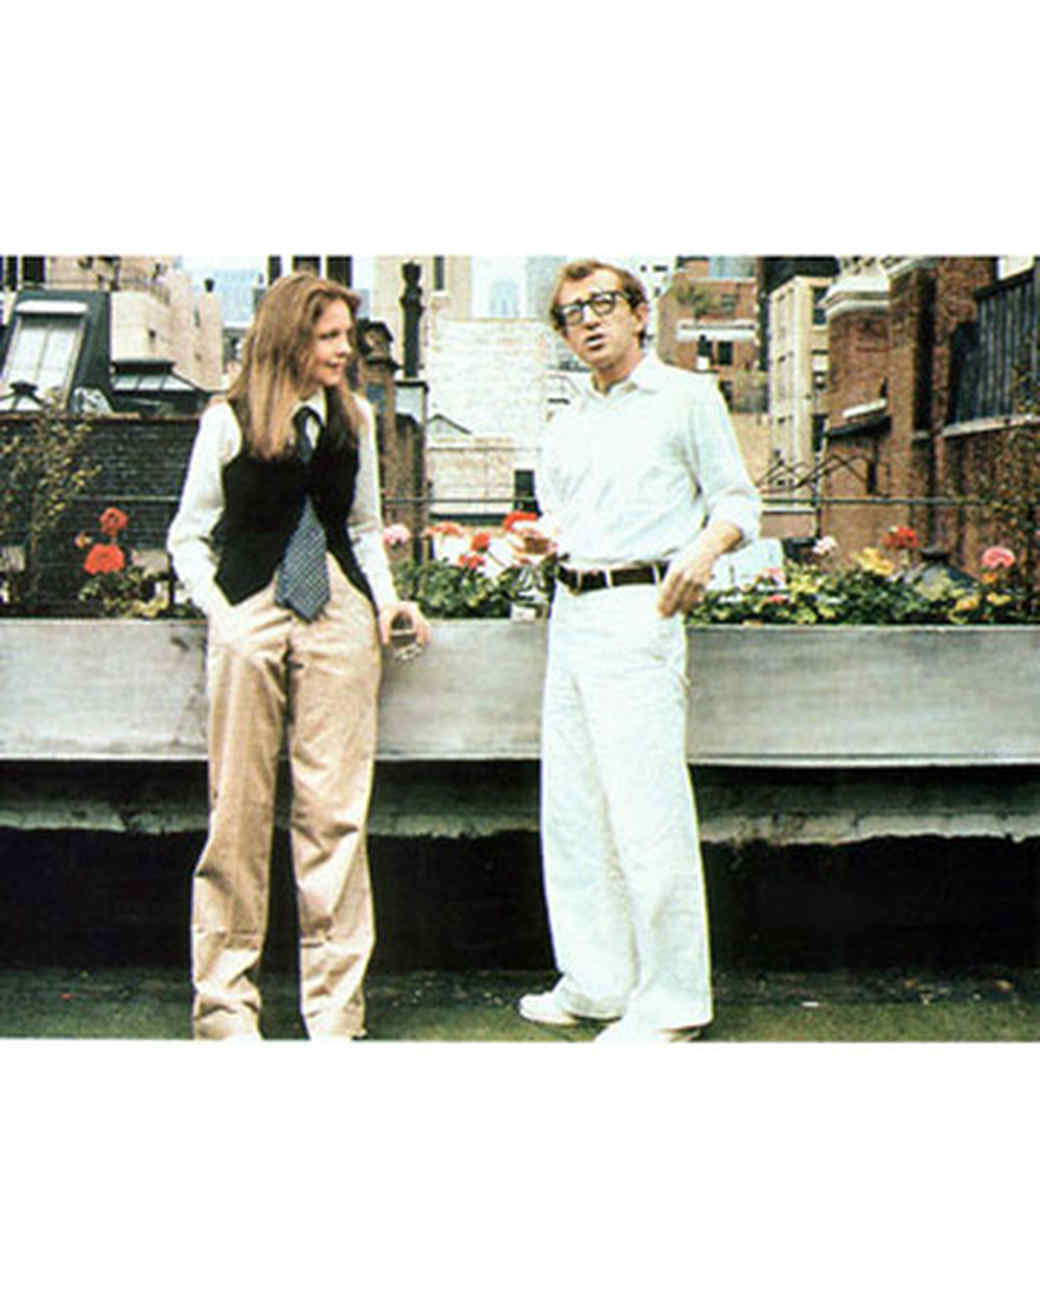 stock_movie_stills_annie_hall_woody_allen.jpg